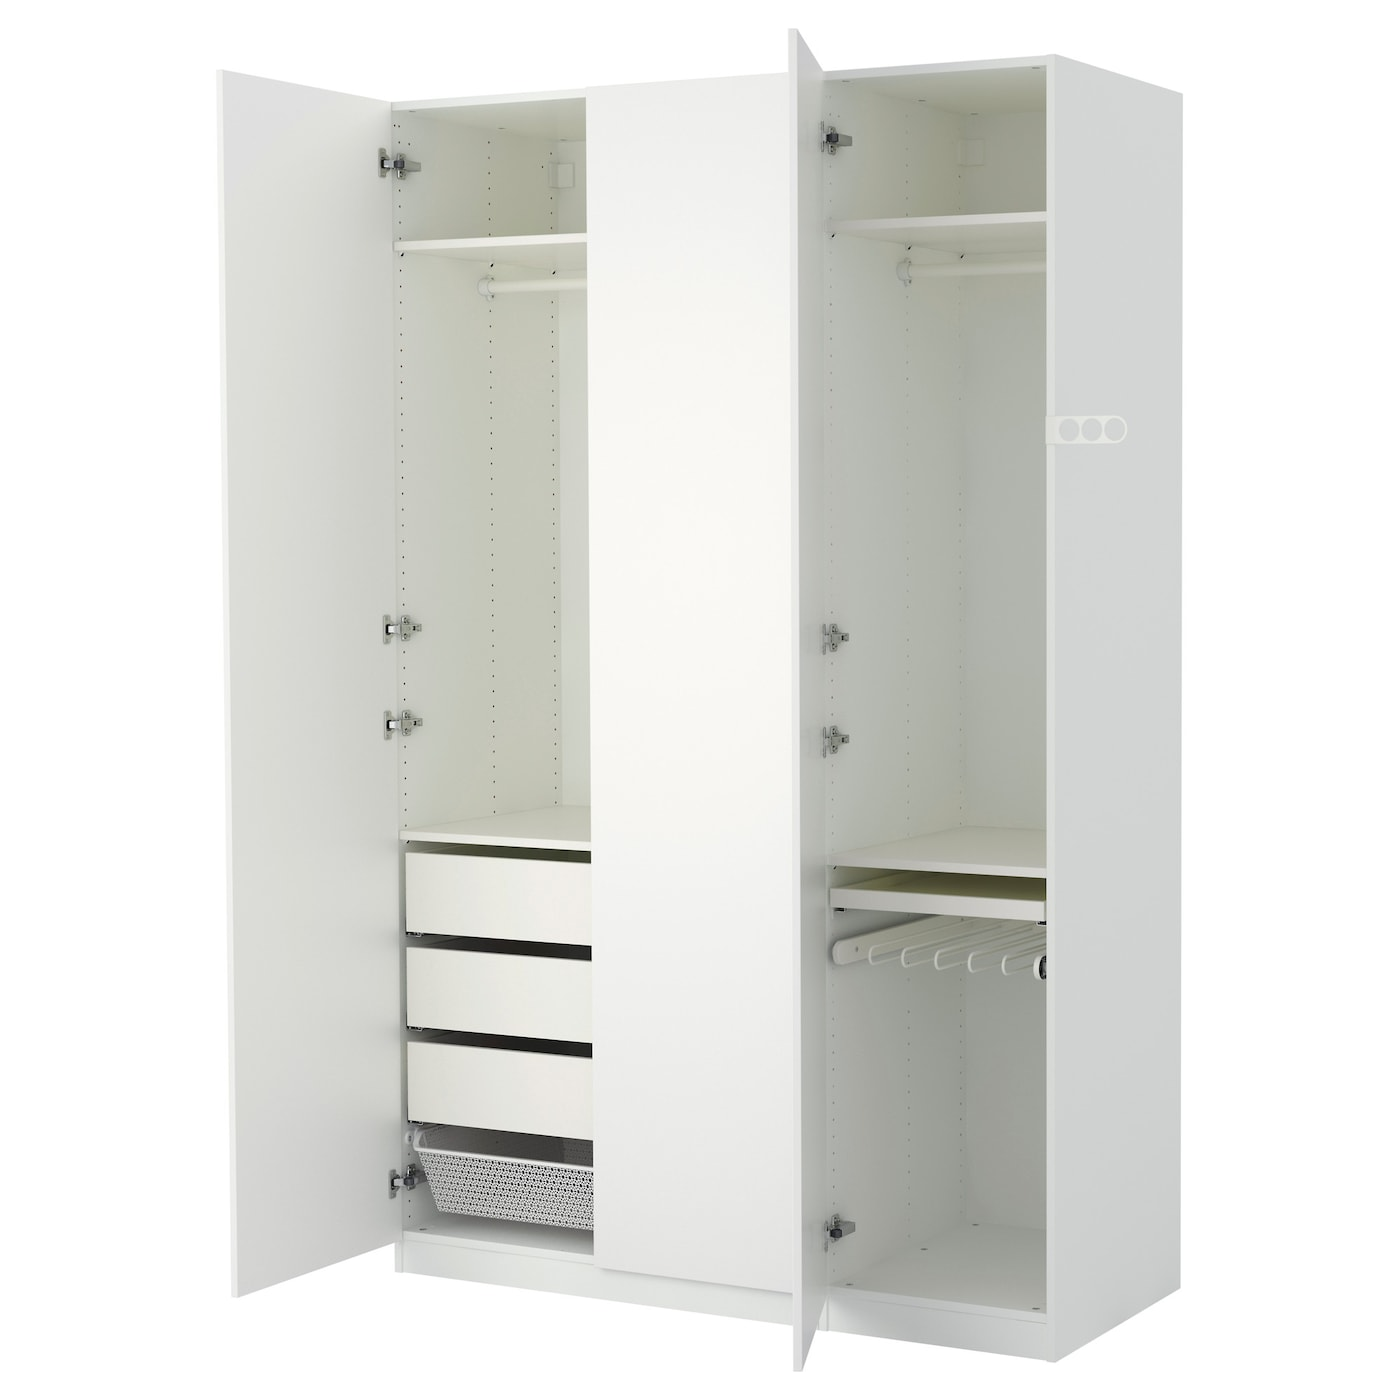 Superb Armoire 4 Portes Ikea #1: IKEA PAX Wardrobe 10 Year Guarantee. Read About The Terms In The Guarantee  Brochure.